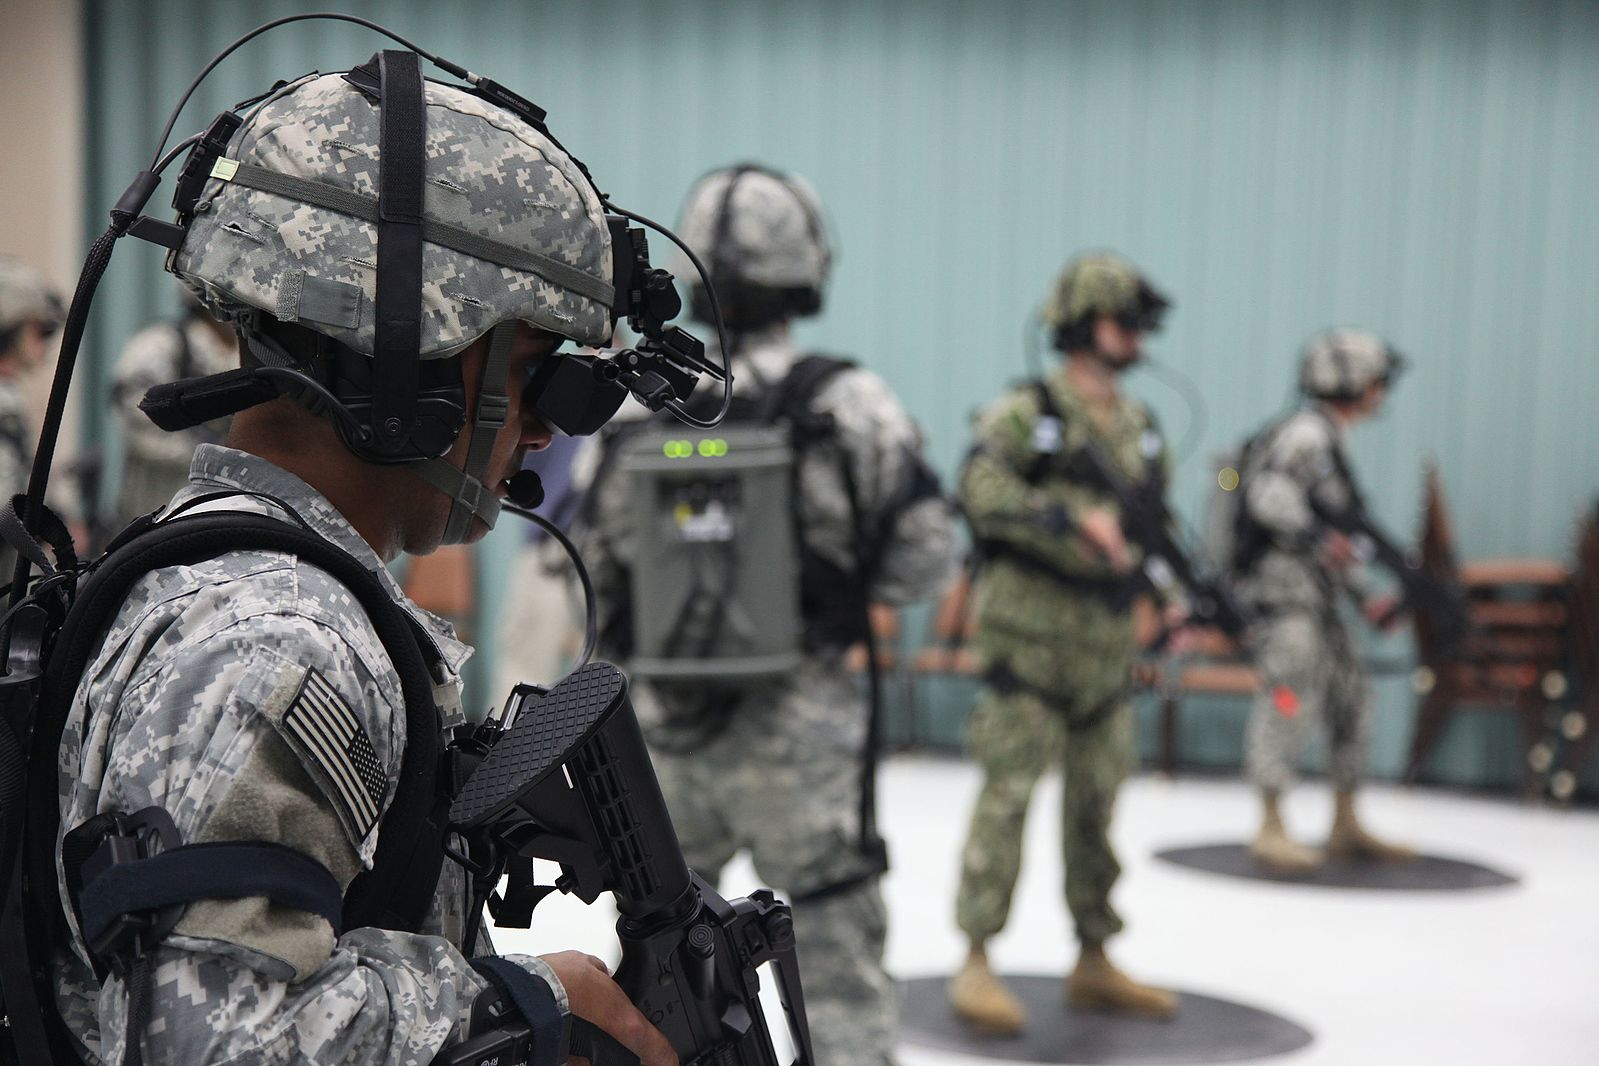 combat troop in gear with VR headsets